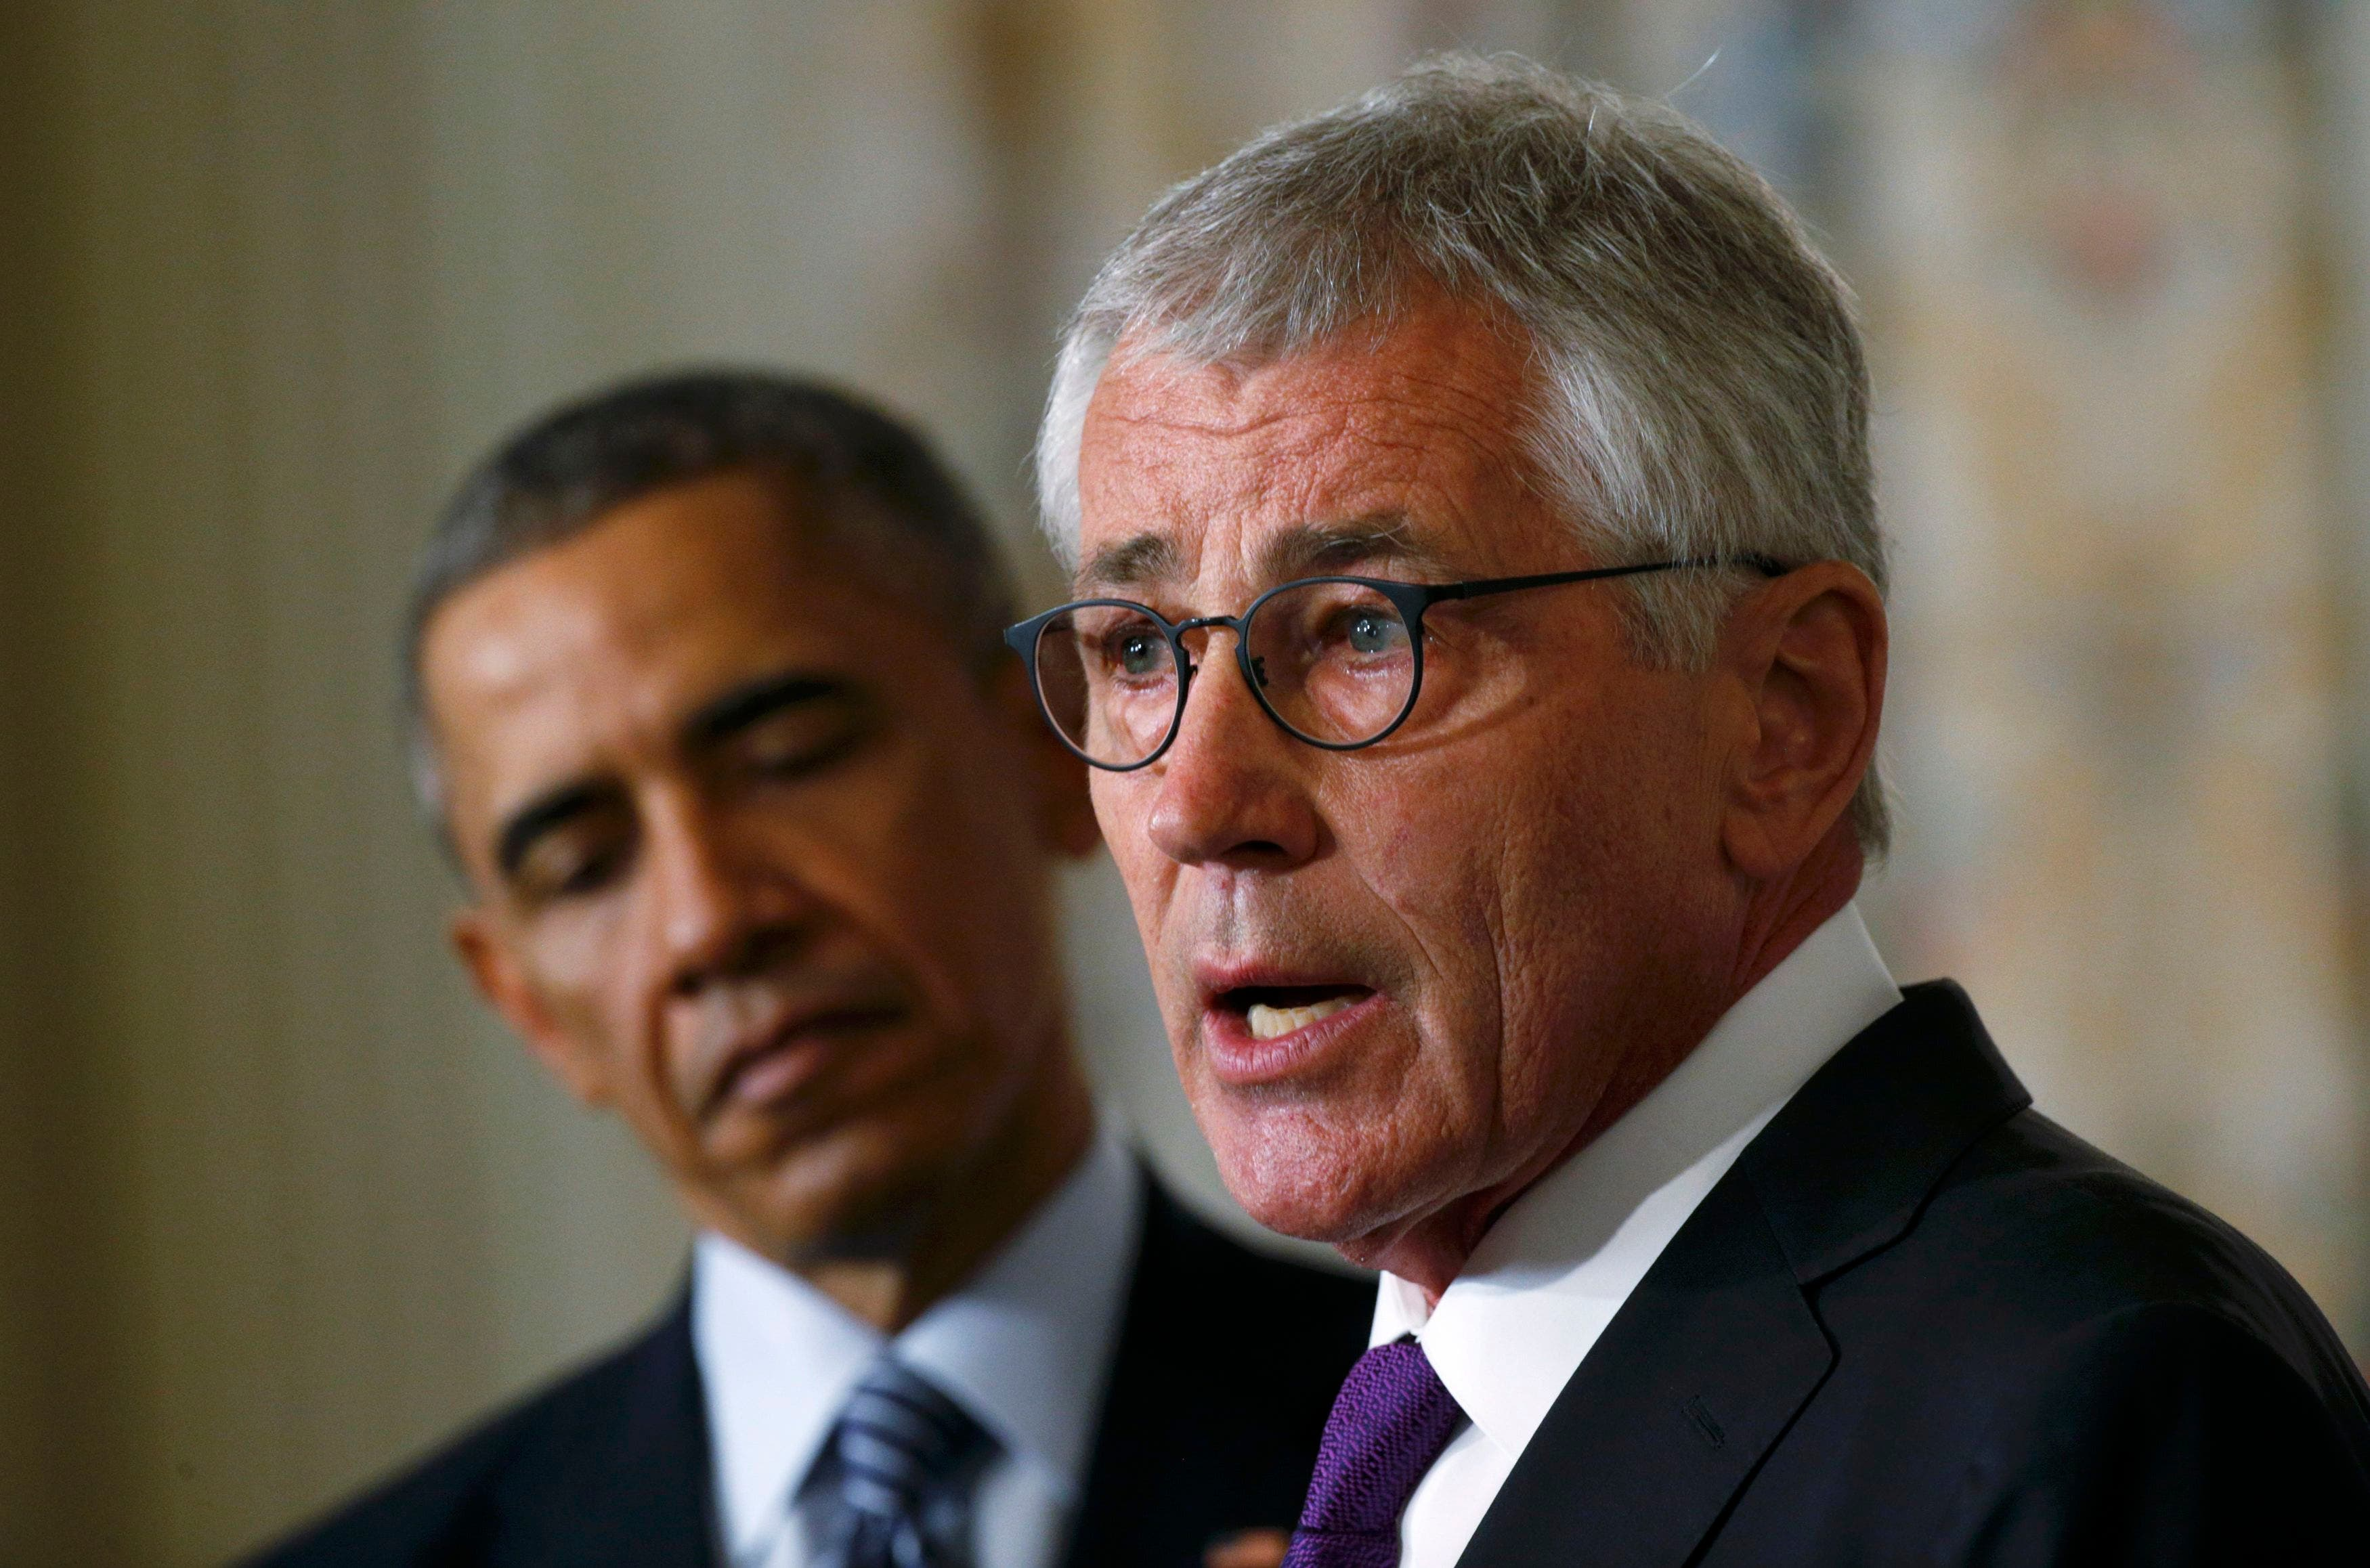 U.S. President Barack Obama (L) listens to Defense Secretary Chuck Hagel after the president announced Hagel's resignation at the White House in Washington, November 24, 2014. (Reuters)